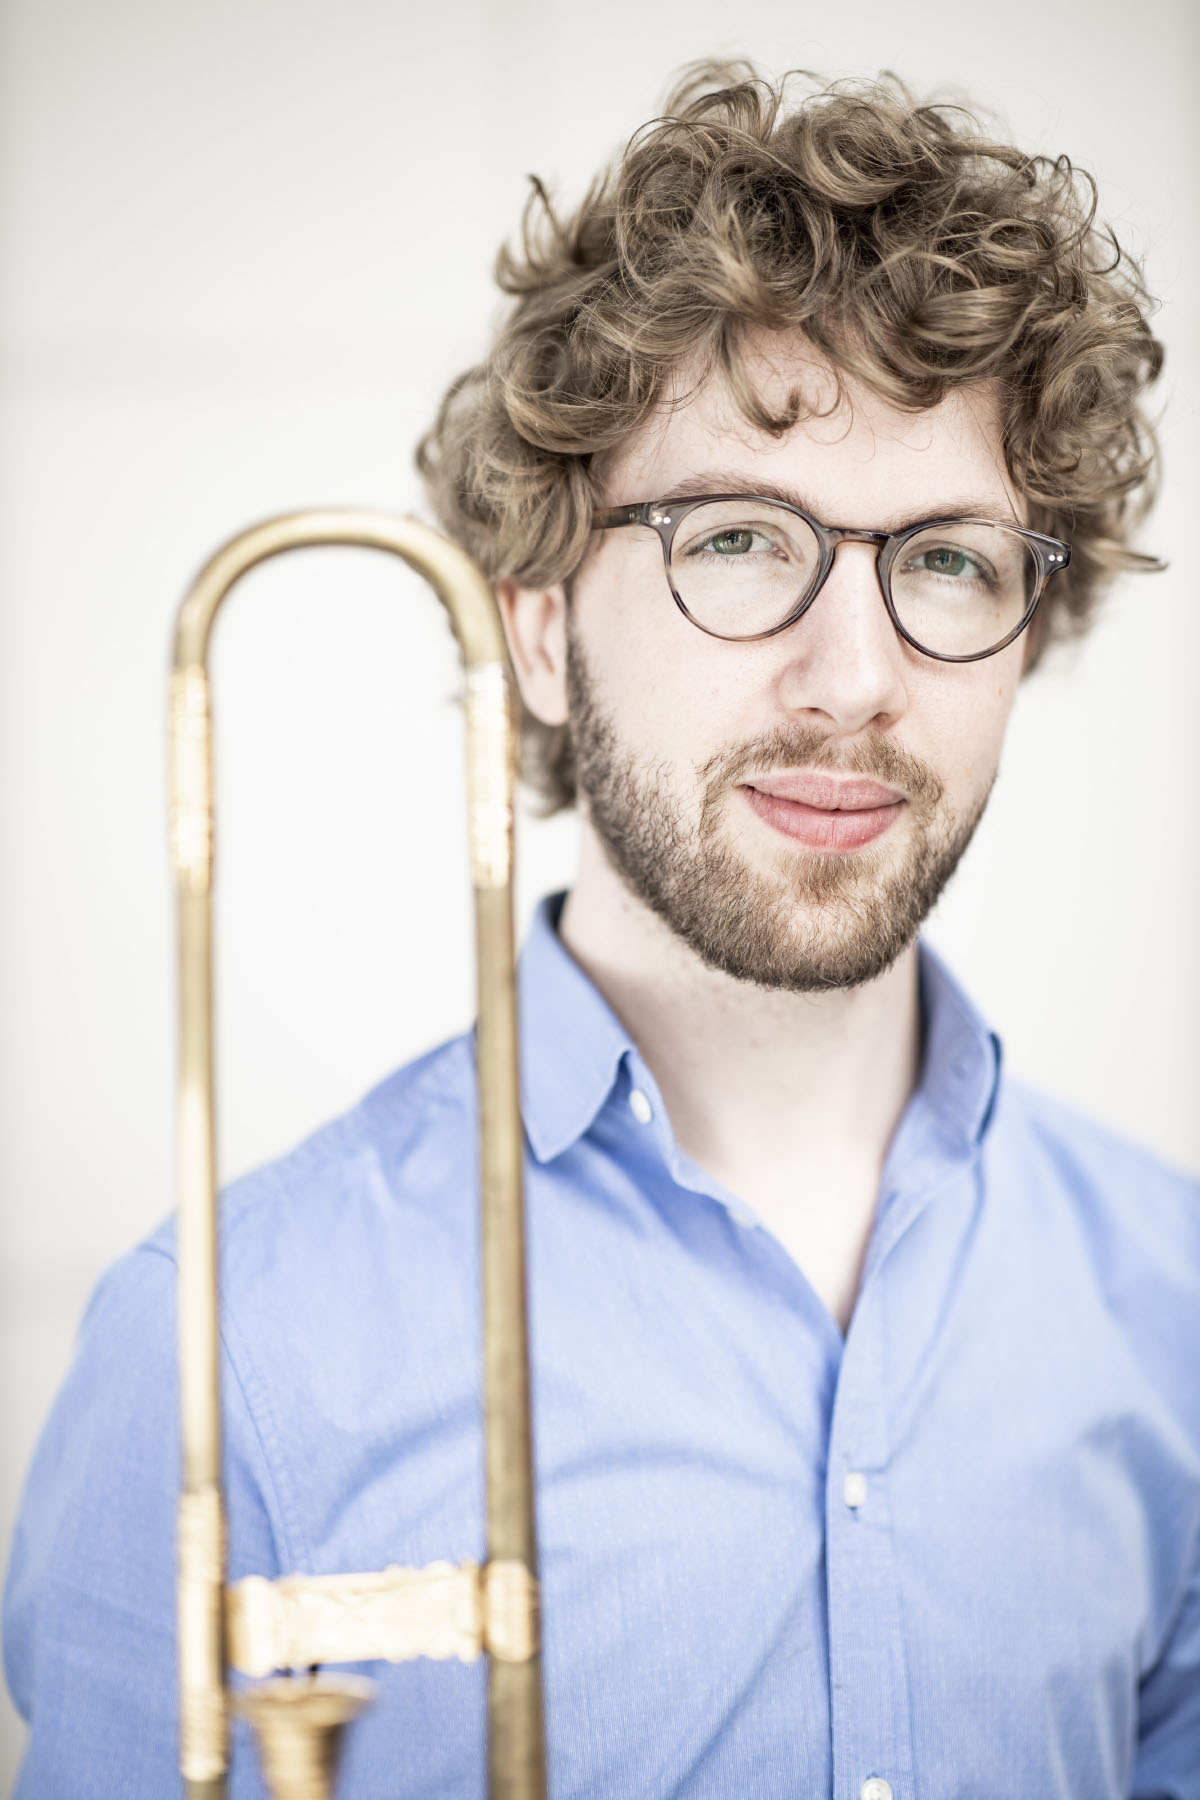 Portrait of Matthijs van der Moolen, sackbut or baroque trombone player of the Castello Consort. Photo by Foppe Schut.